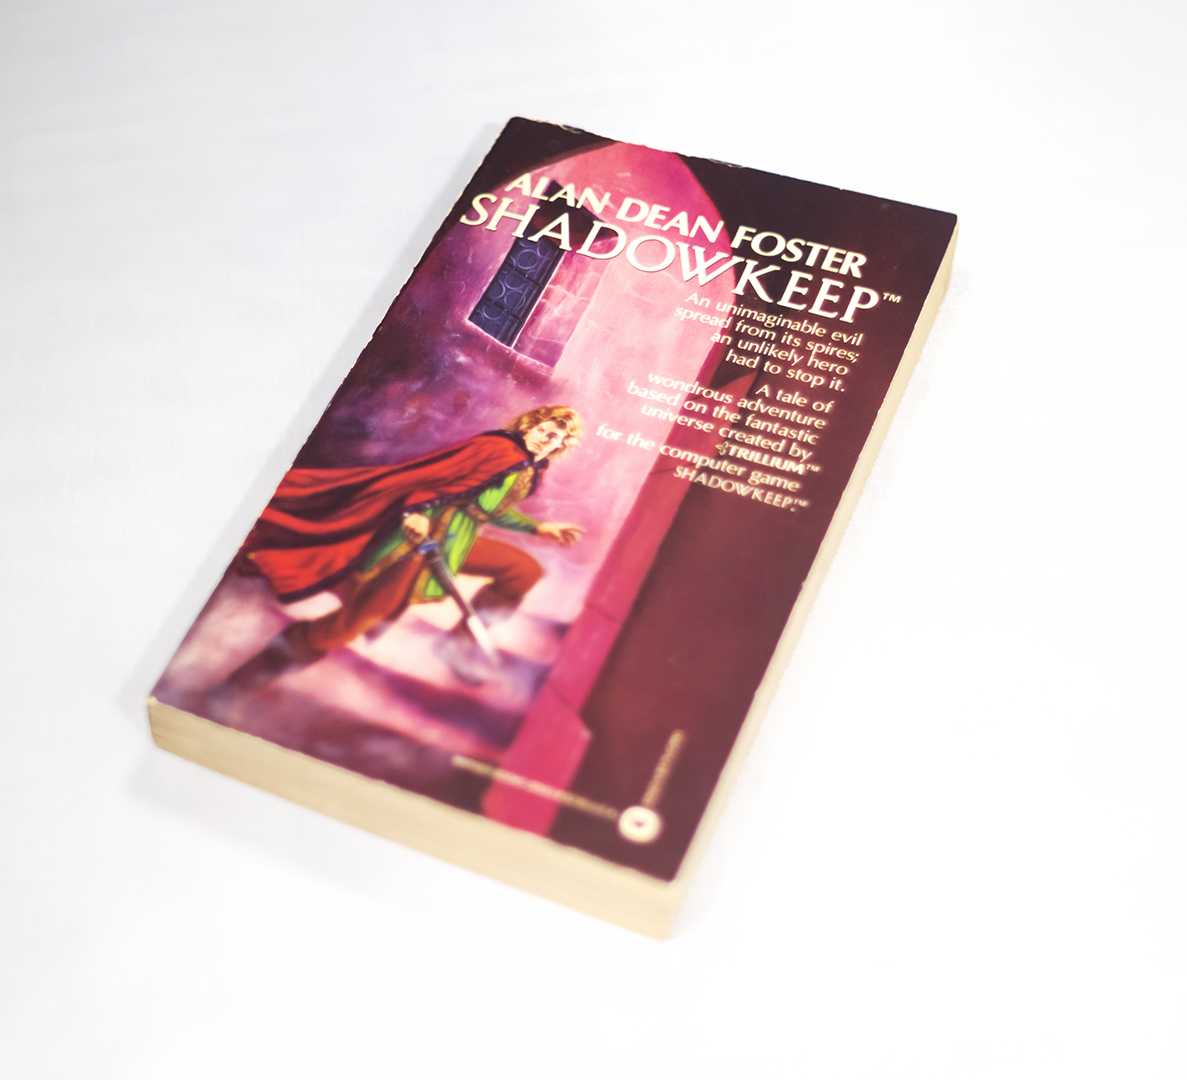 Photograph of a book cover with the title at the top in white letters. An illustration in color, a man with blonde hair in a red cape, green blouse and brown pants is climbing up the stairs, a sword in his hand.